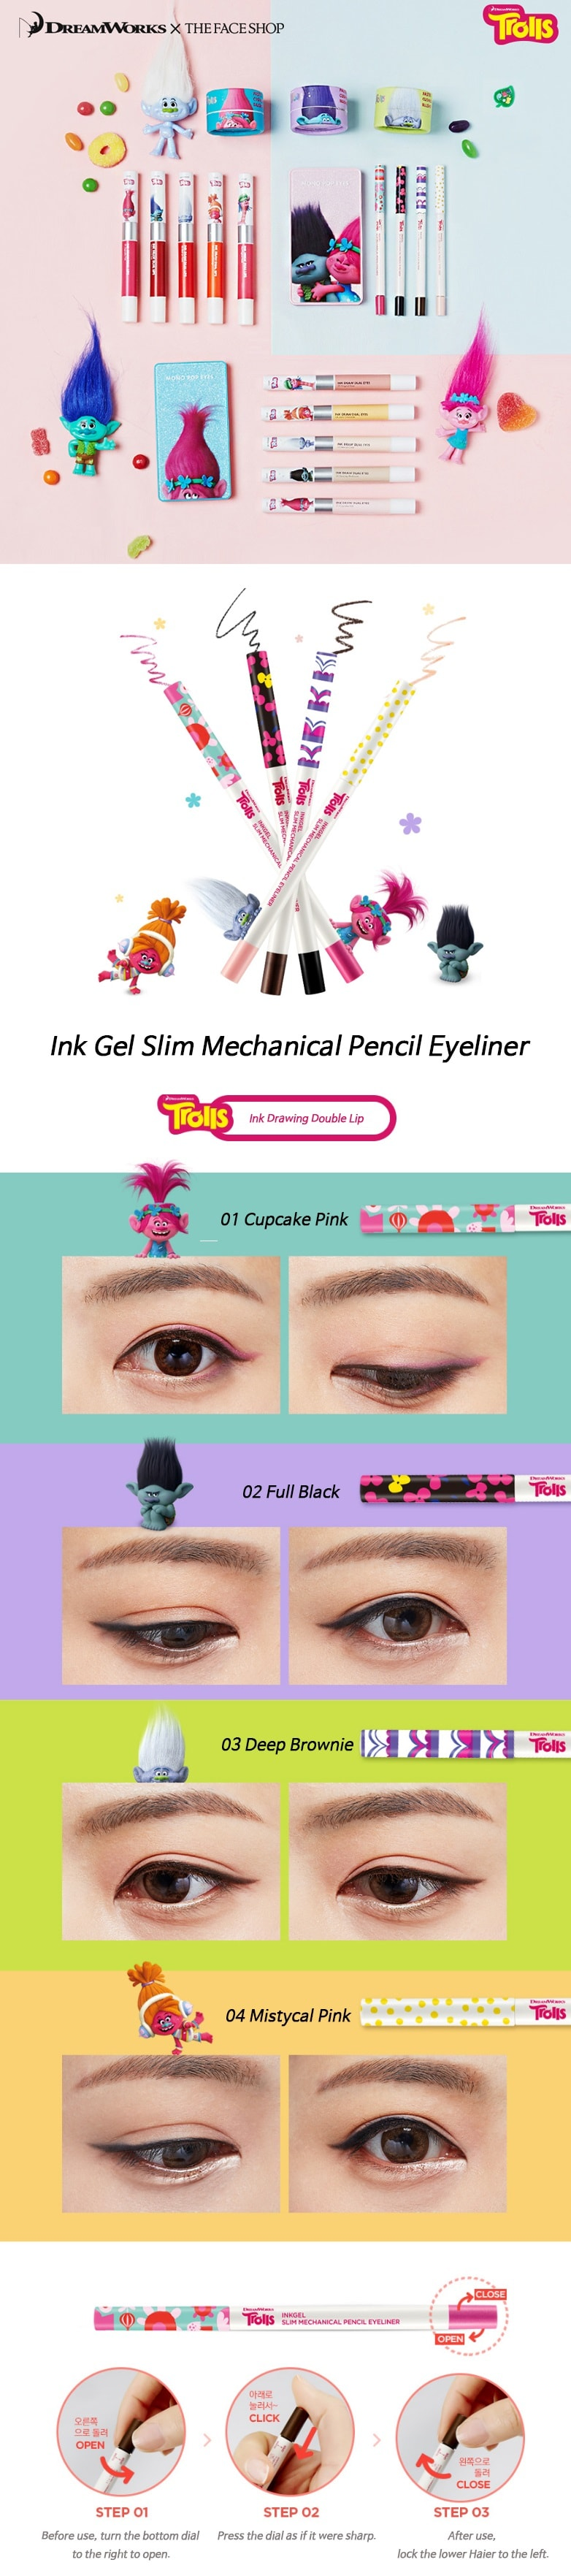 The Face Shop Ink Gel Slim Sharp Liner Troll Edition [#3 Deep Browny]